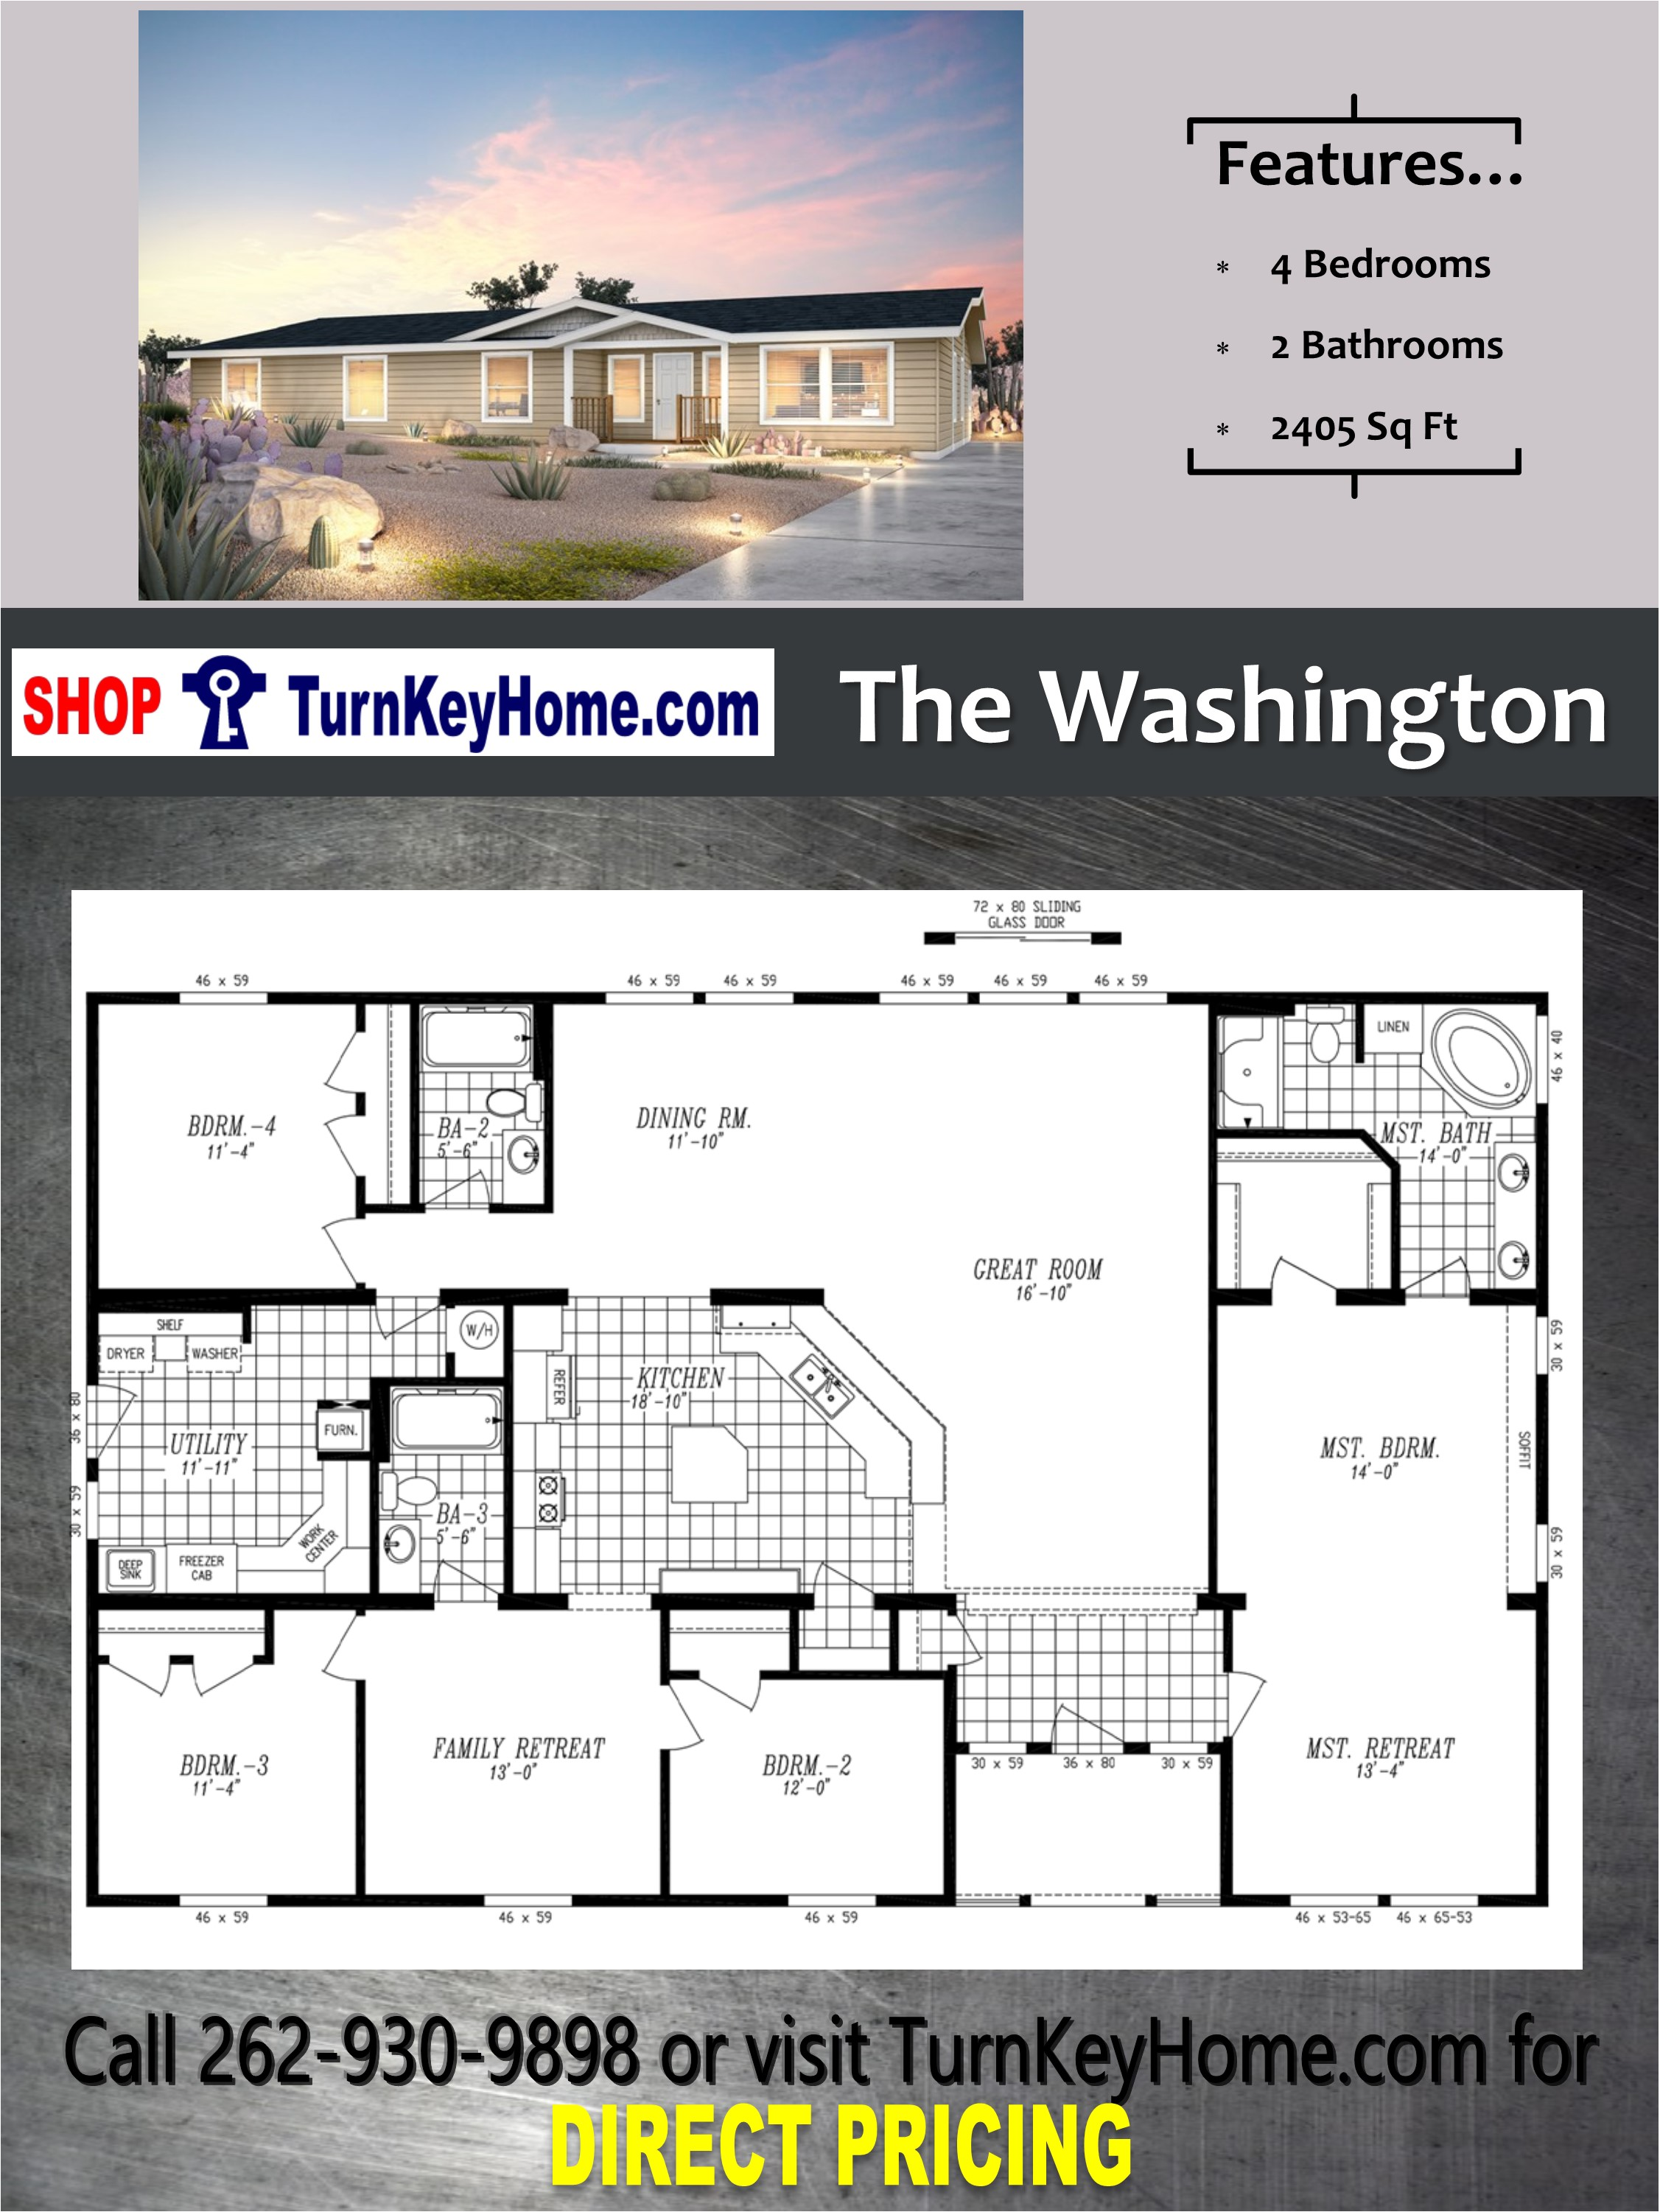 The washington home 4 bed 3 bath plan 2405 sf priced from for Direct from the designers house plans